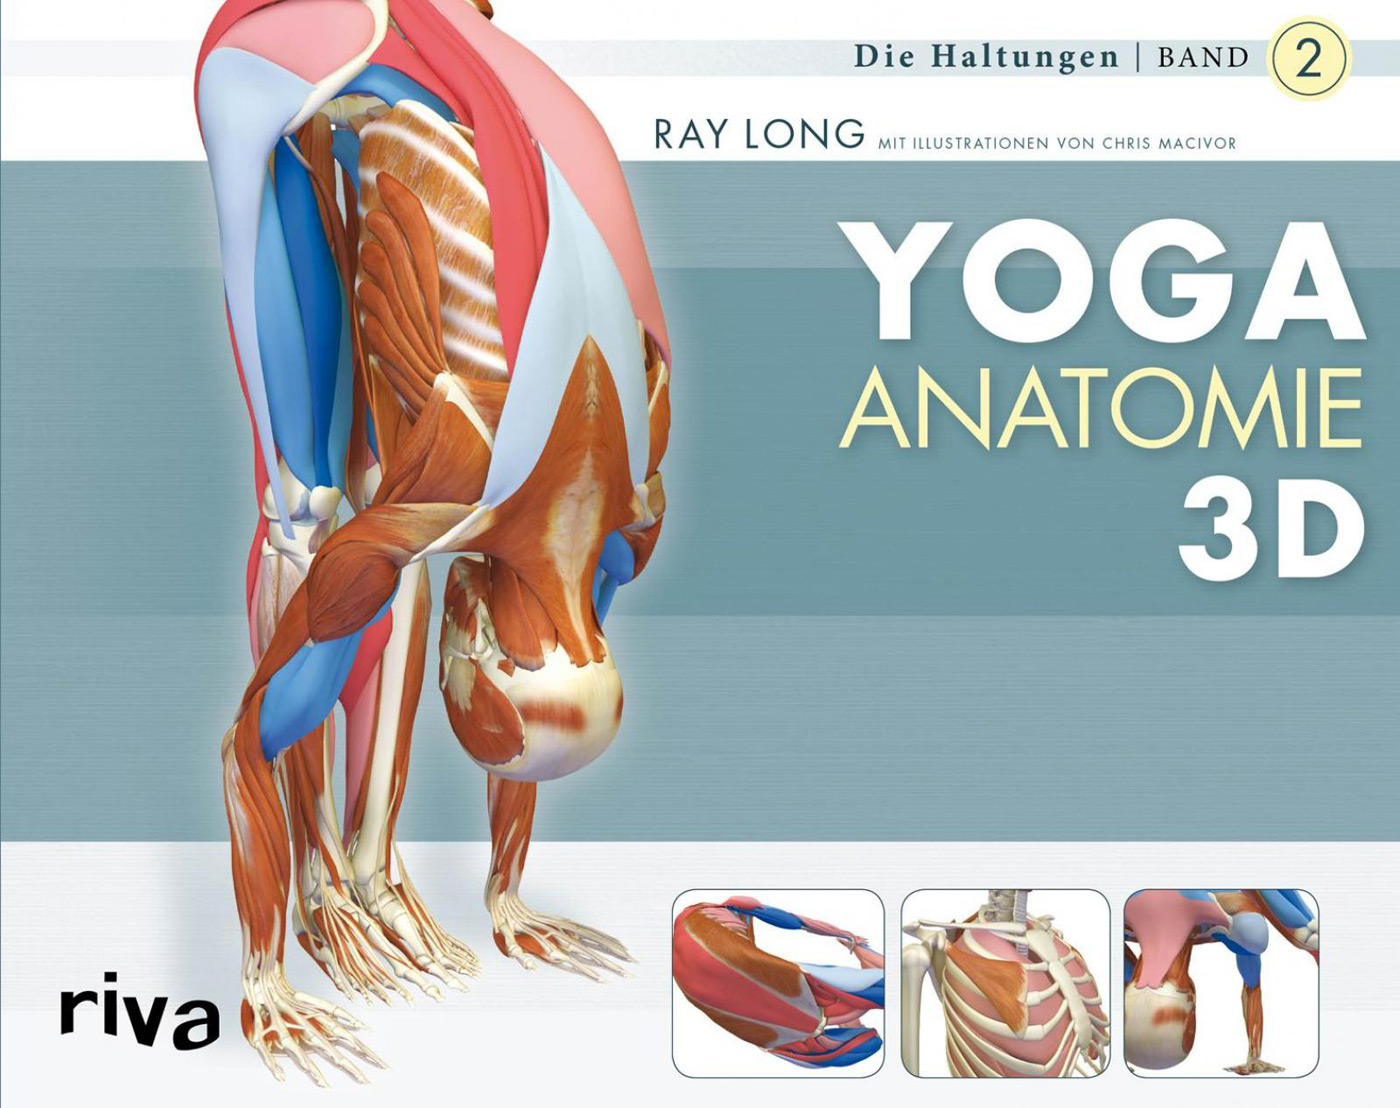 Yoga Anatomie 3D, Band 2 von Ray Long